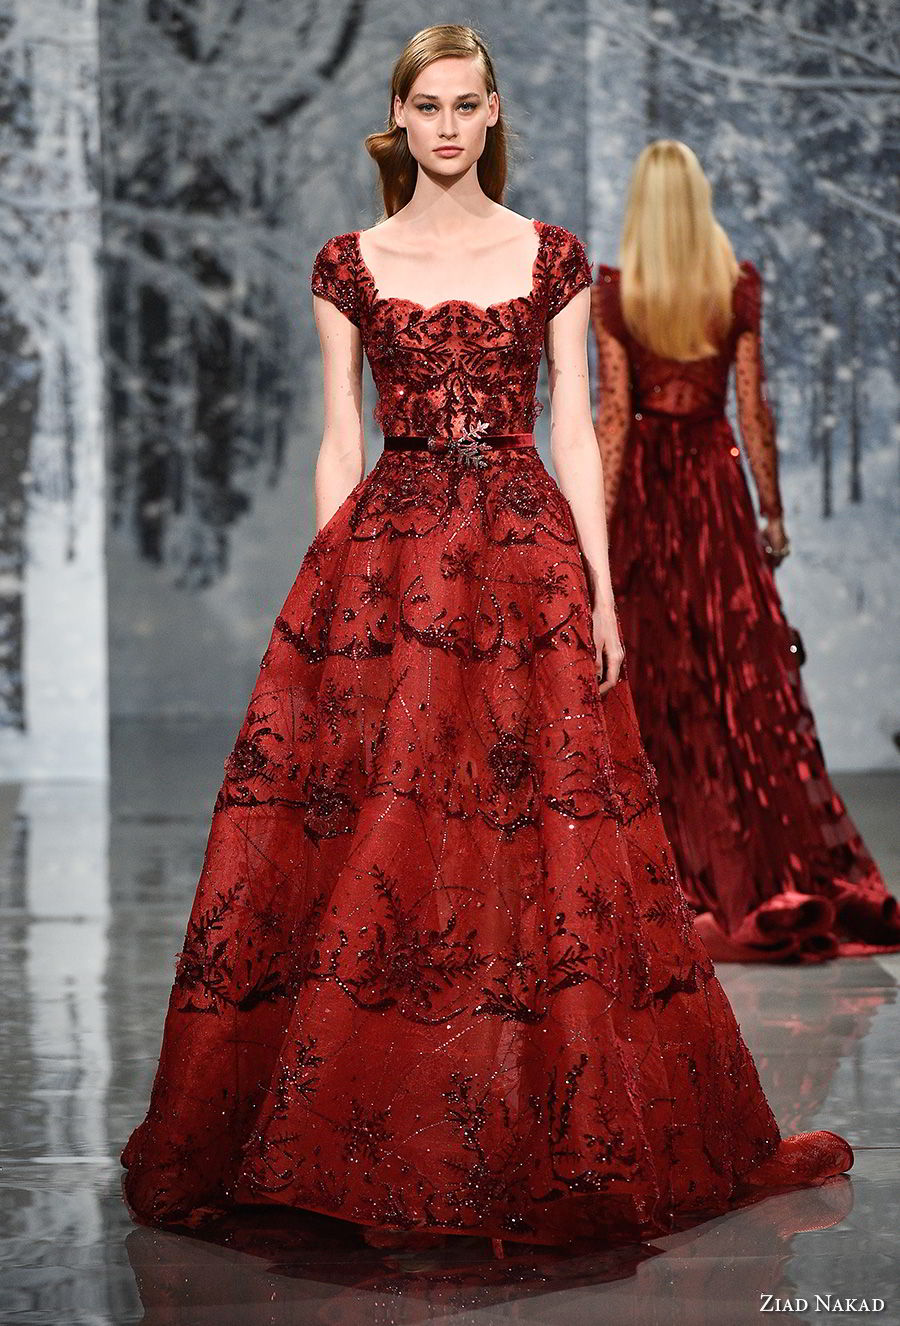 ziad nakad couture fall 2017 cap sleeves square neckline full embellishment couture elegant red a  line wedding dress open square back medium train (7) mv